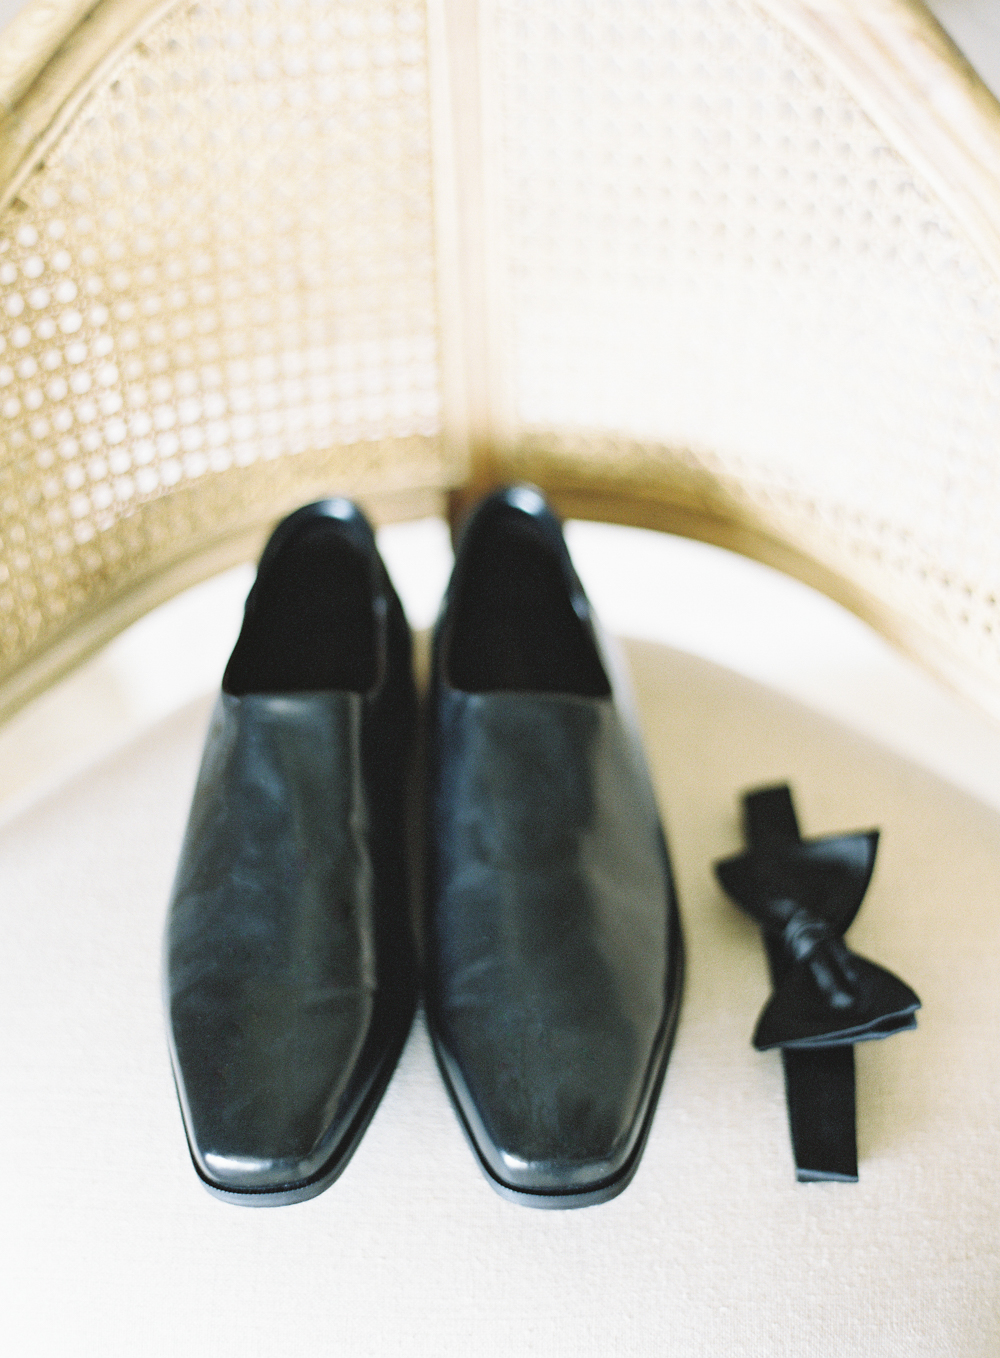 Luxury groom shoes Donald Pliner | neutral wedding | European Wedding Inspiration | French wedding | France wedding photographer | Southern California film photographer | San Diego wedding photographer | Whiskers and Willow Photography